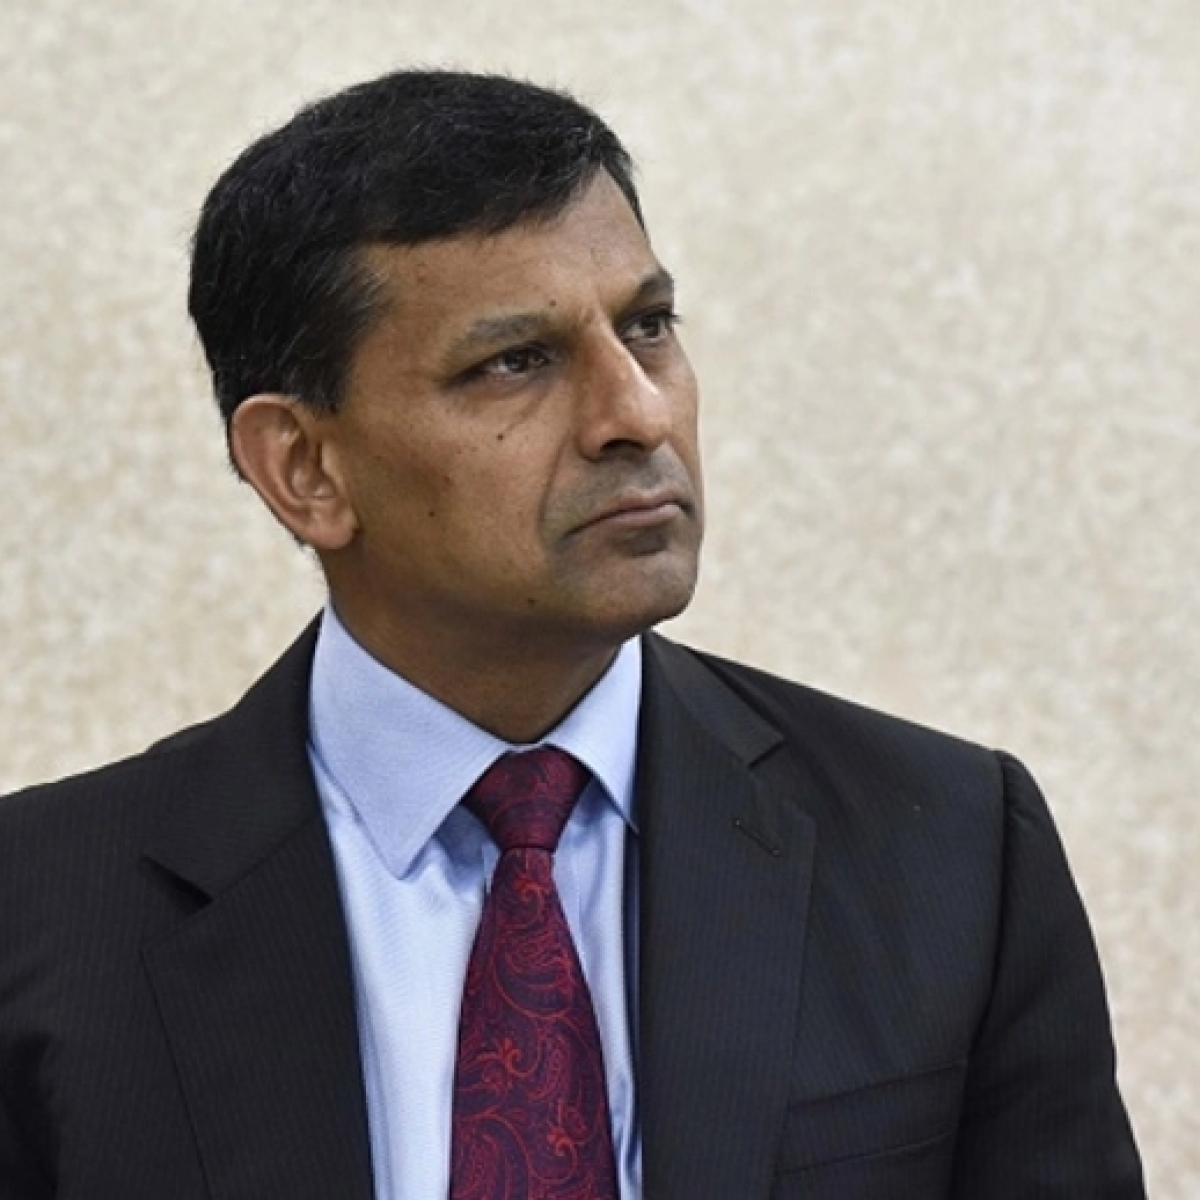 Troll army forcing people to tone down their criticism: Raghuram Rajan